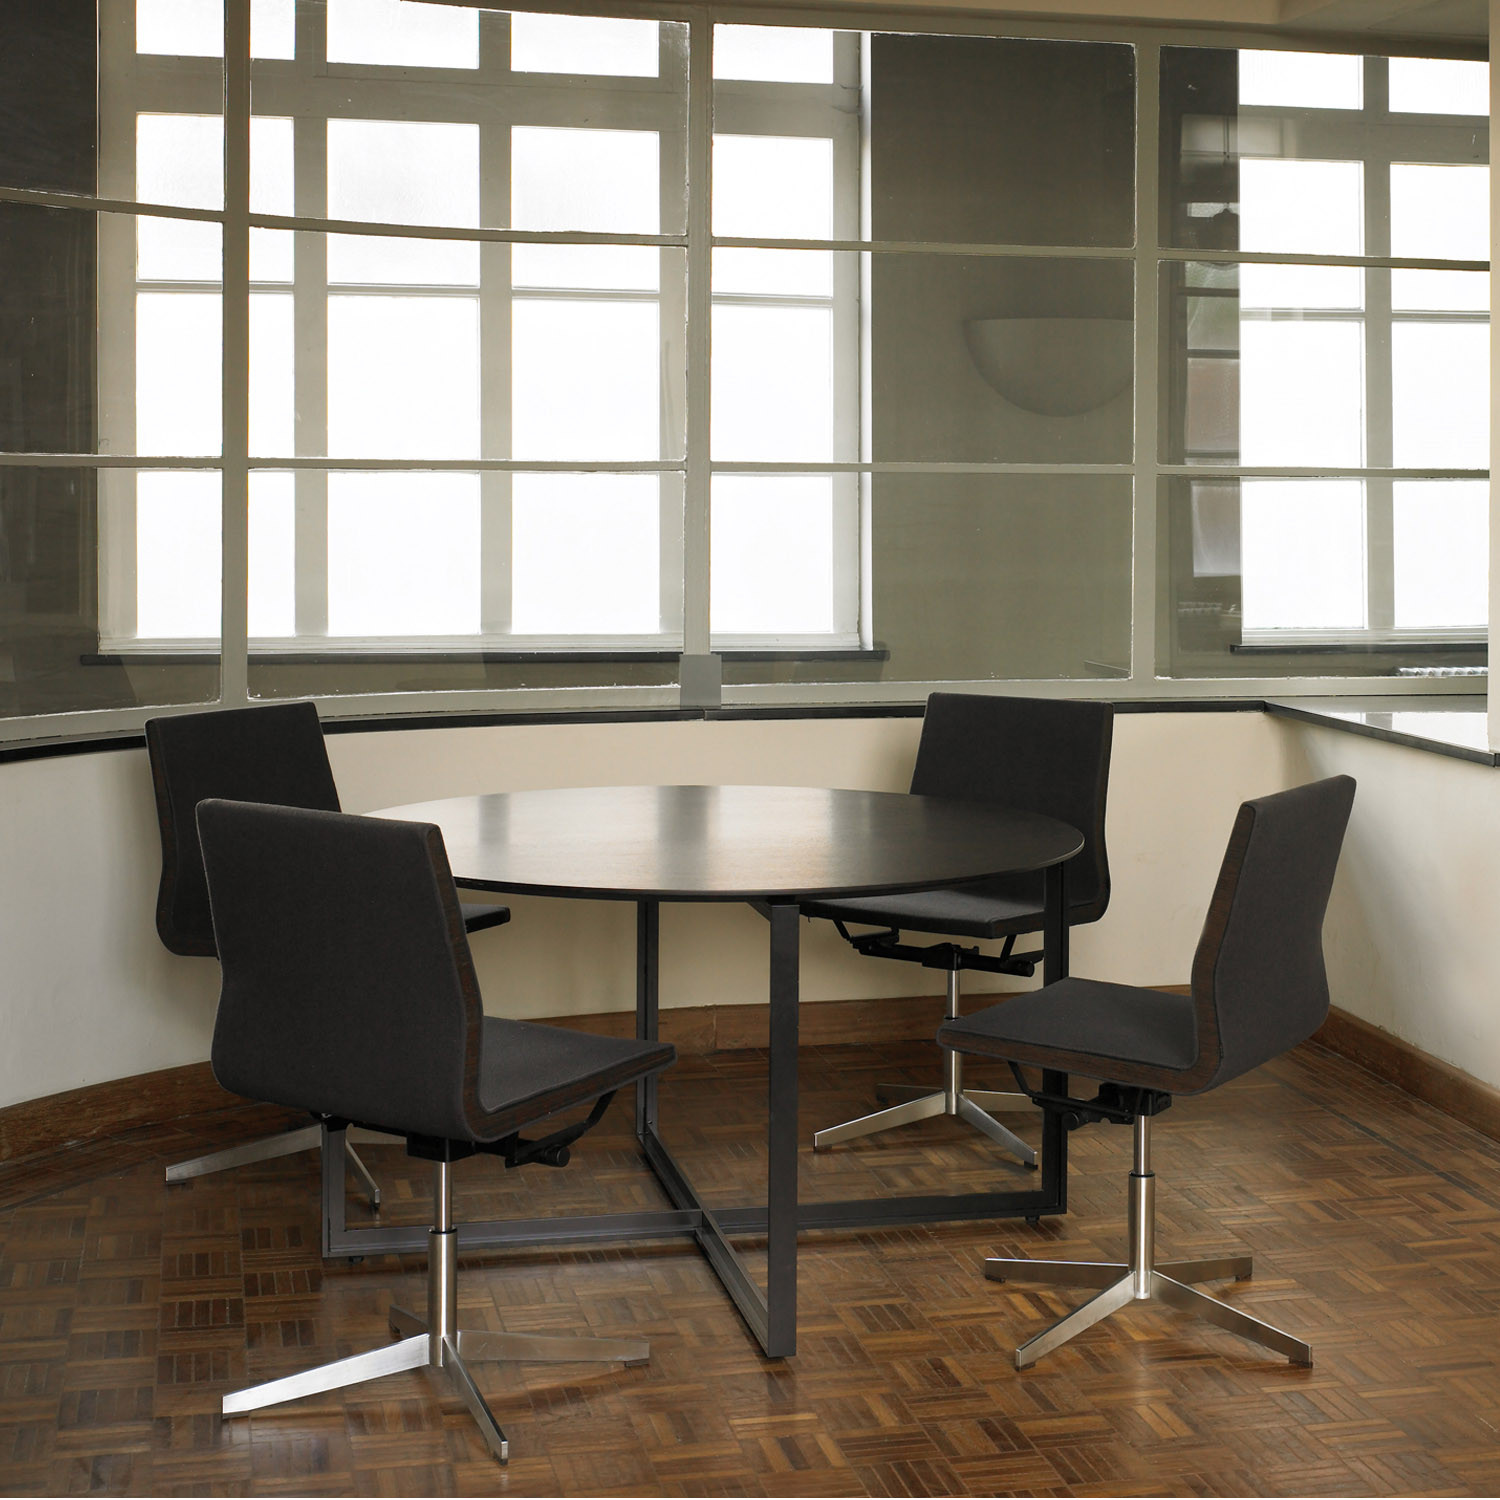 Bulo DESK Round Meeting Table